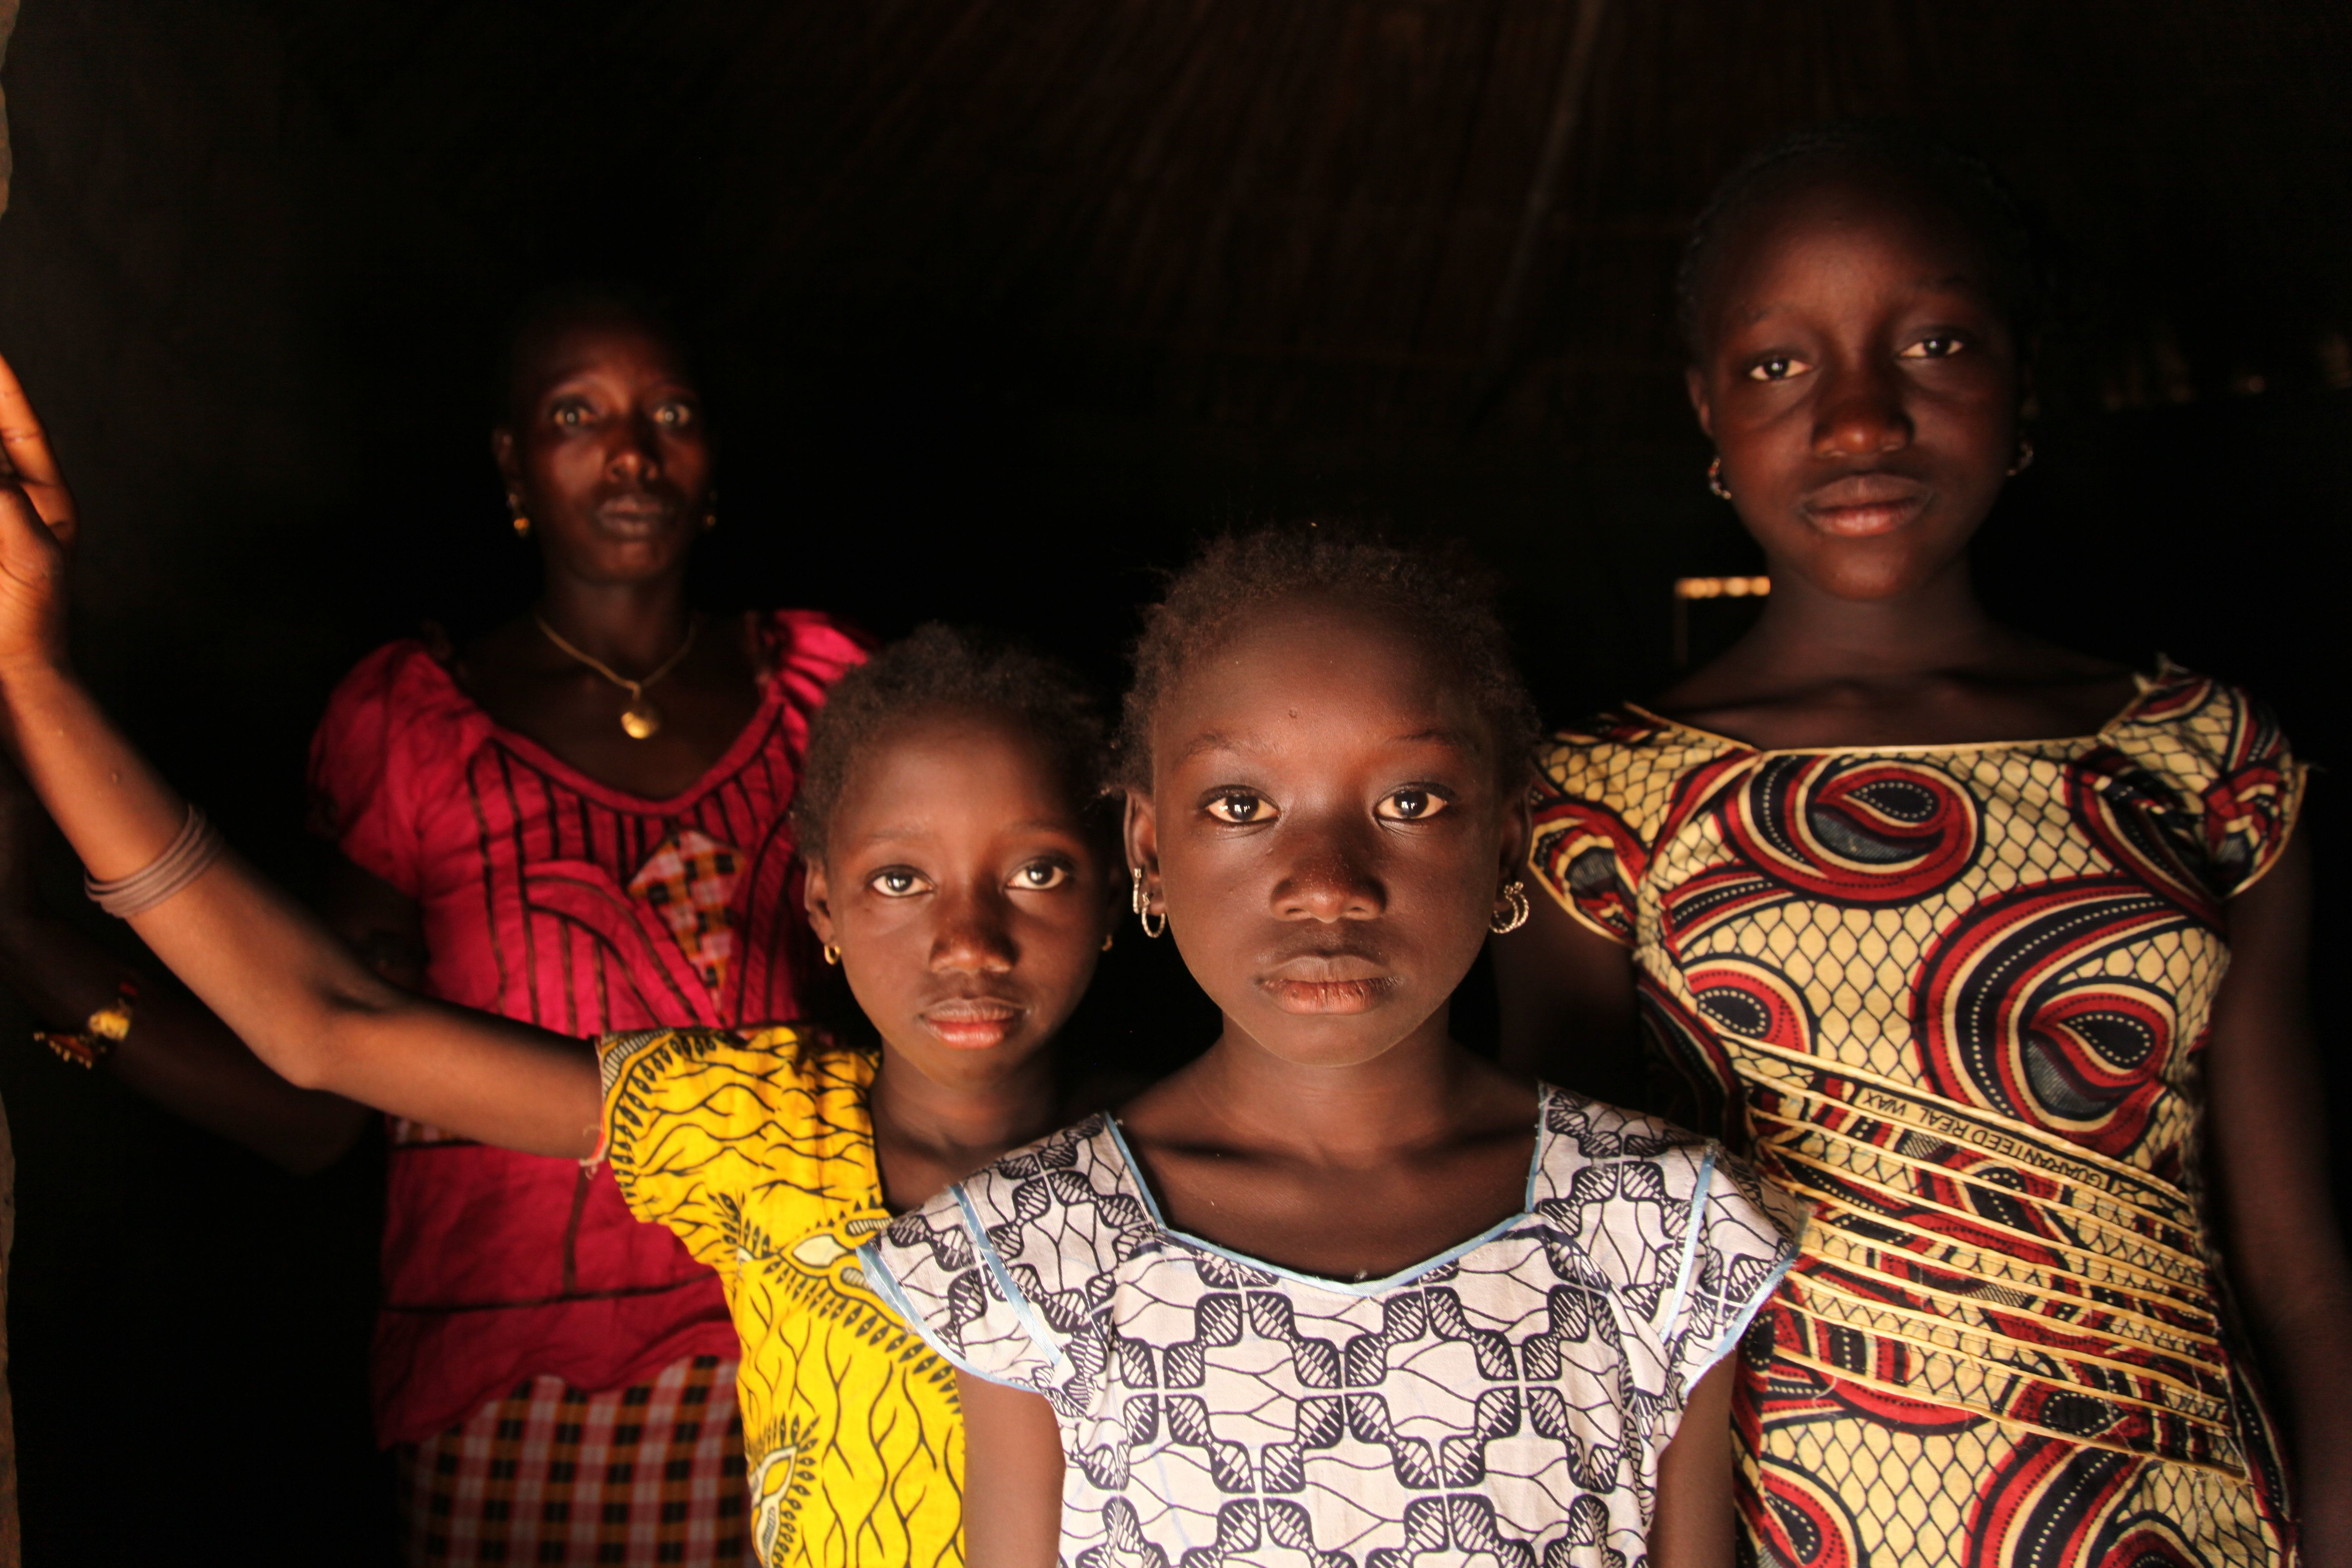 A woman and her daughters stand in their home, in the village of Cambadju in Bafat� Region. Their village is the first in the country to renounce female genital mutilation/cutting (FGM/C). The harmful traditional practice, which can result in irreversible, life-long health and other complications, as well as psychological harm, was renounced in the village that same day, during a ceremony organized with support from the international NGO Tostan, a UNICEF partner. The event was attended by girls and young women, former traditional cutters, delegates from youth and women�s groups, government officials and others. Between 2006 and 2010, the percentage of girls and women aged 15 to 49 years of age subjected to FGM/C in Guinea-Bissau increased from 45 per cent to 50 per cent � and reached 94 per cent in eastern parts of the country. Together with Tostan and other partners, UNICEF supports interventions that help communities decide for themselves to renounce the practice.